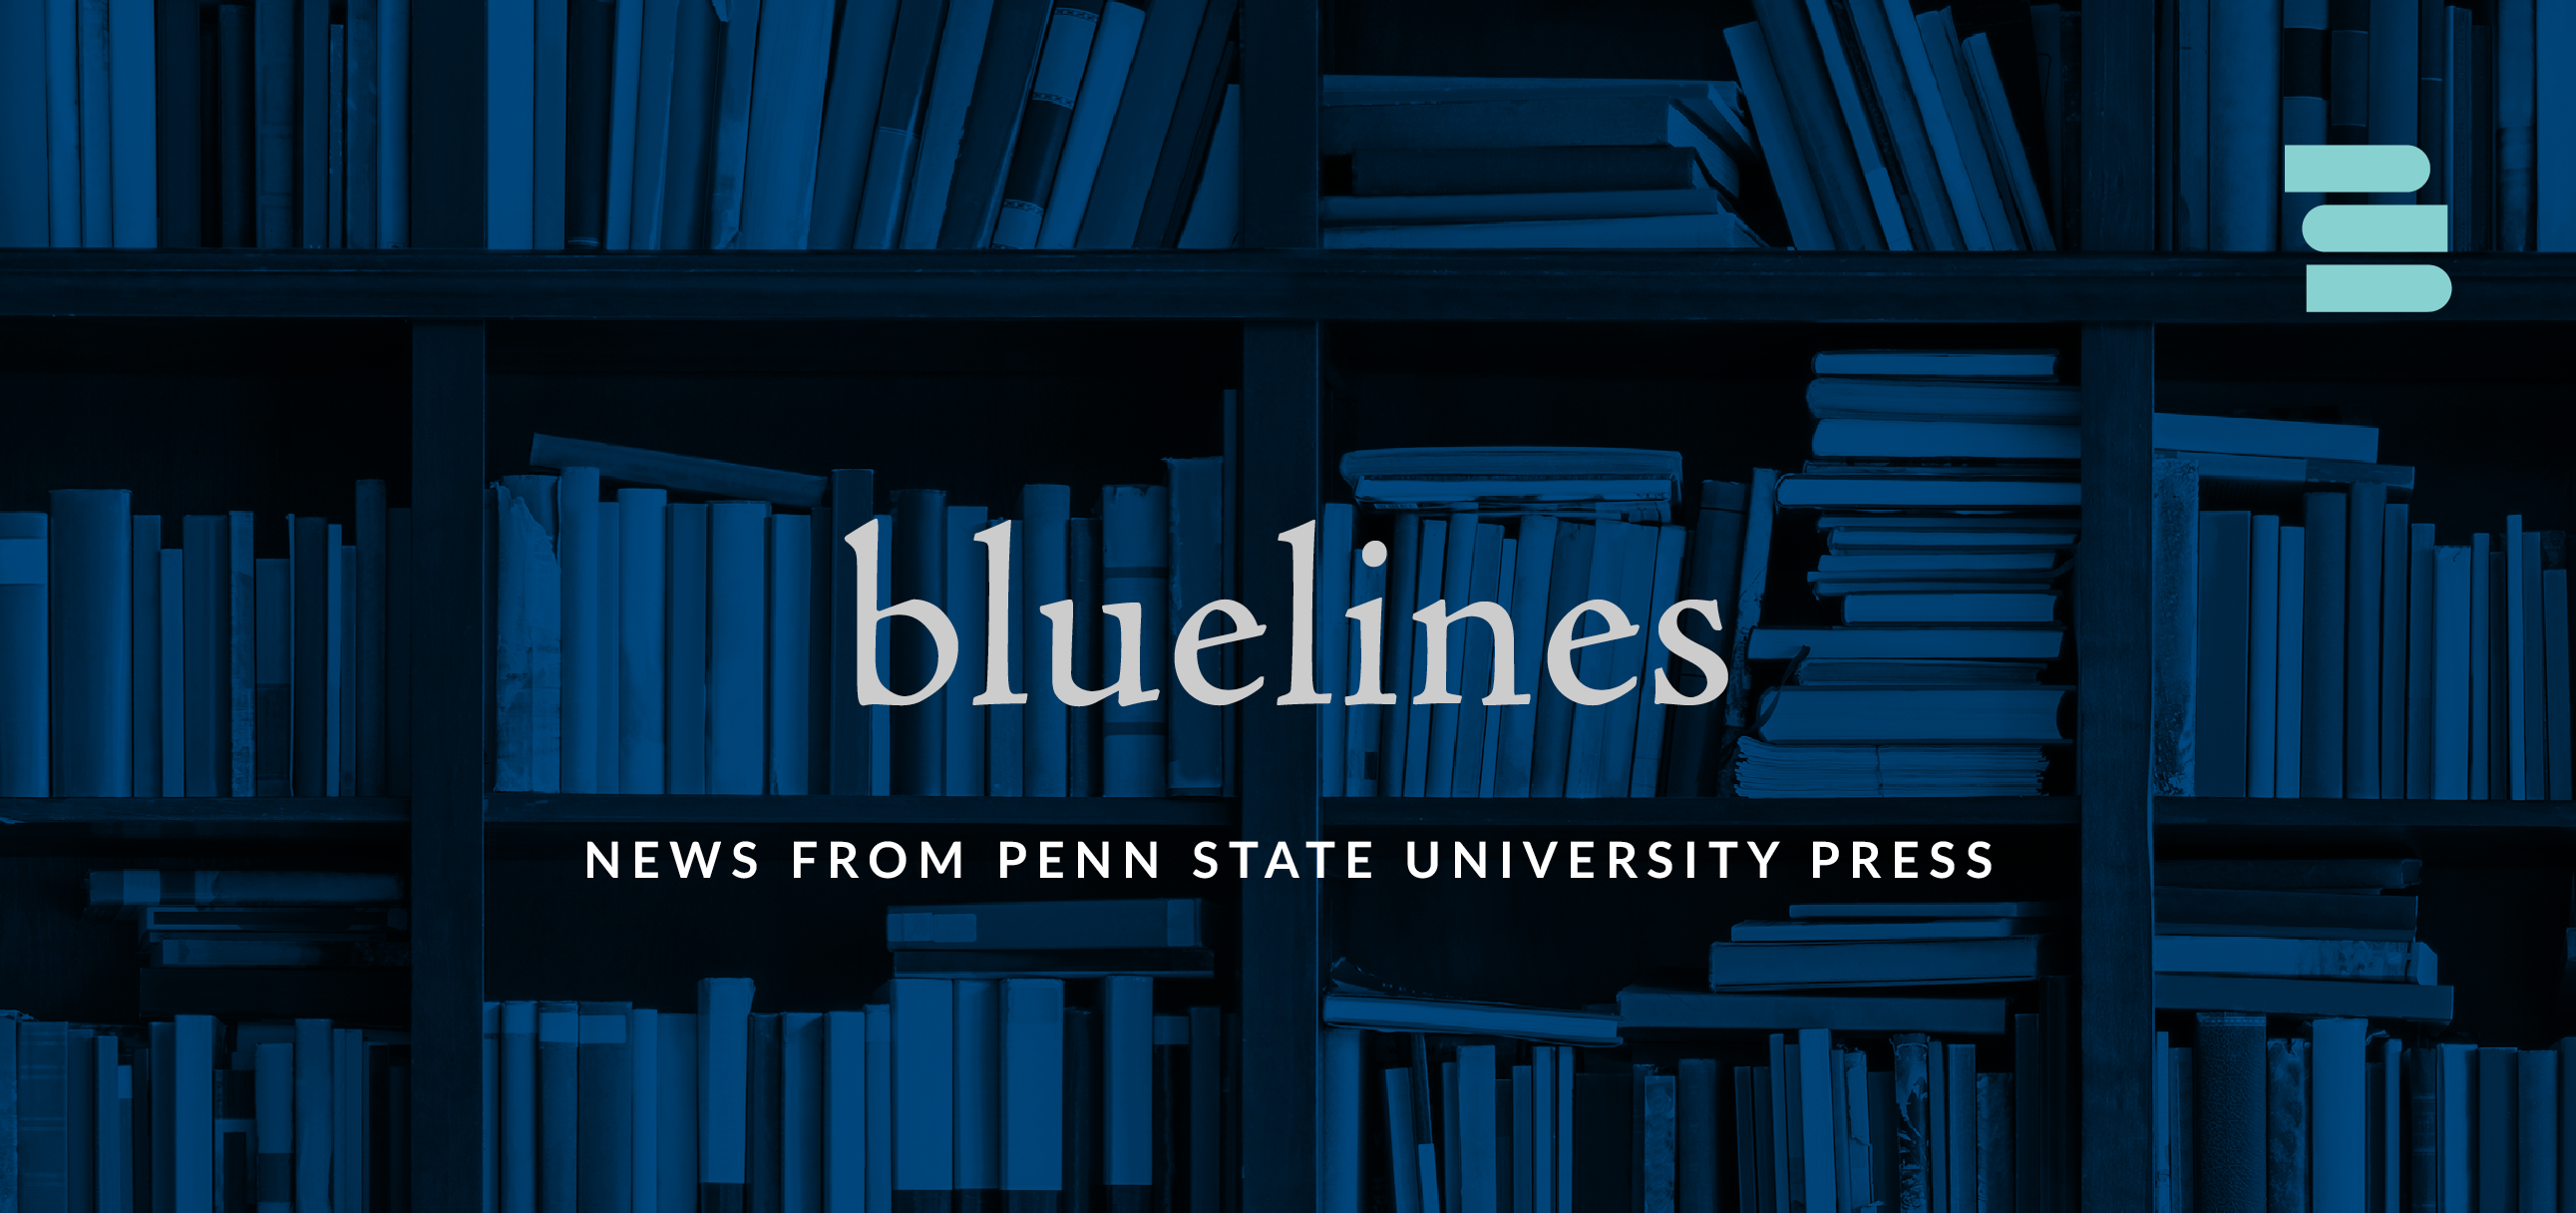 Bluelines: News from Penn State University Press